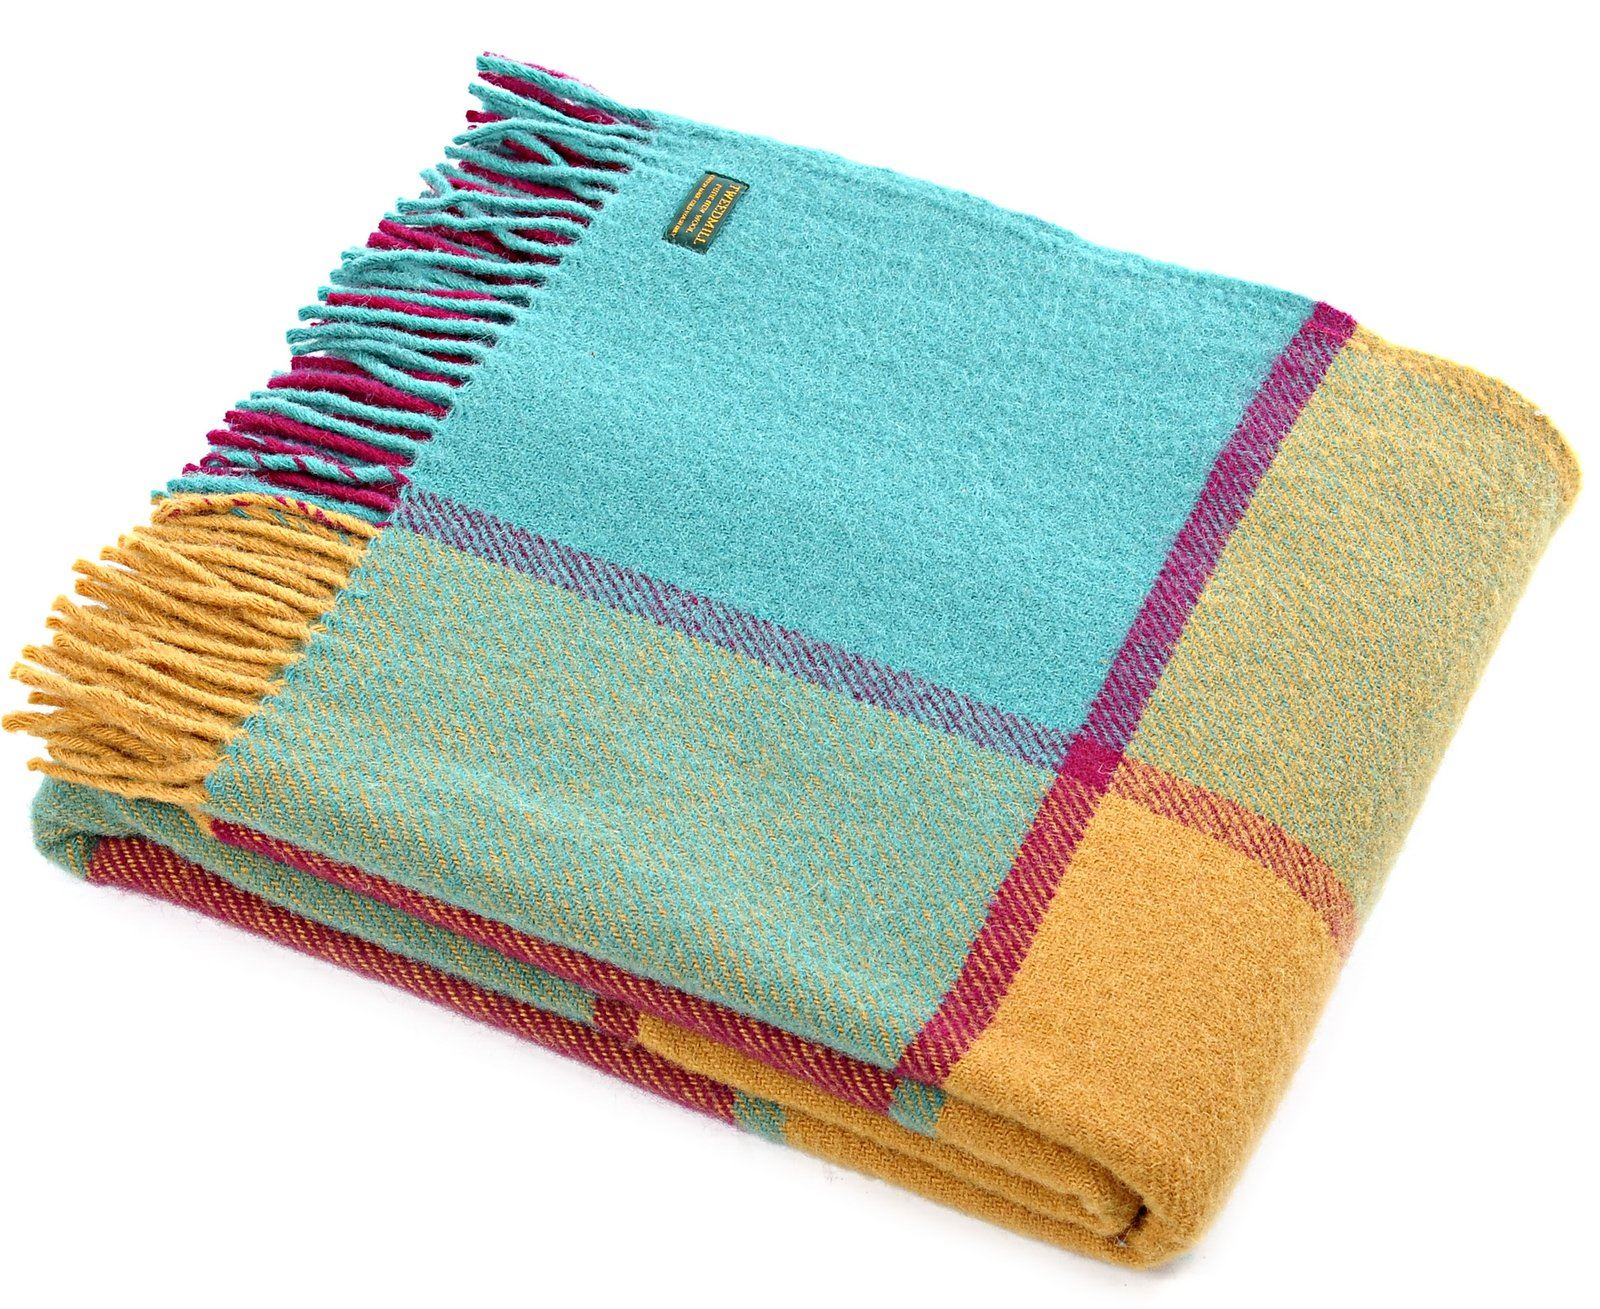 sofa throws uk only brown sofas in living rooms 100 wool blanket bed throw travel car rug block